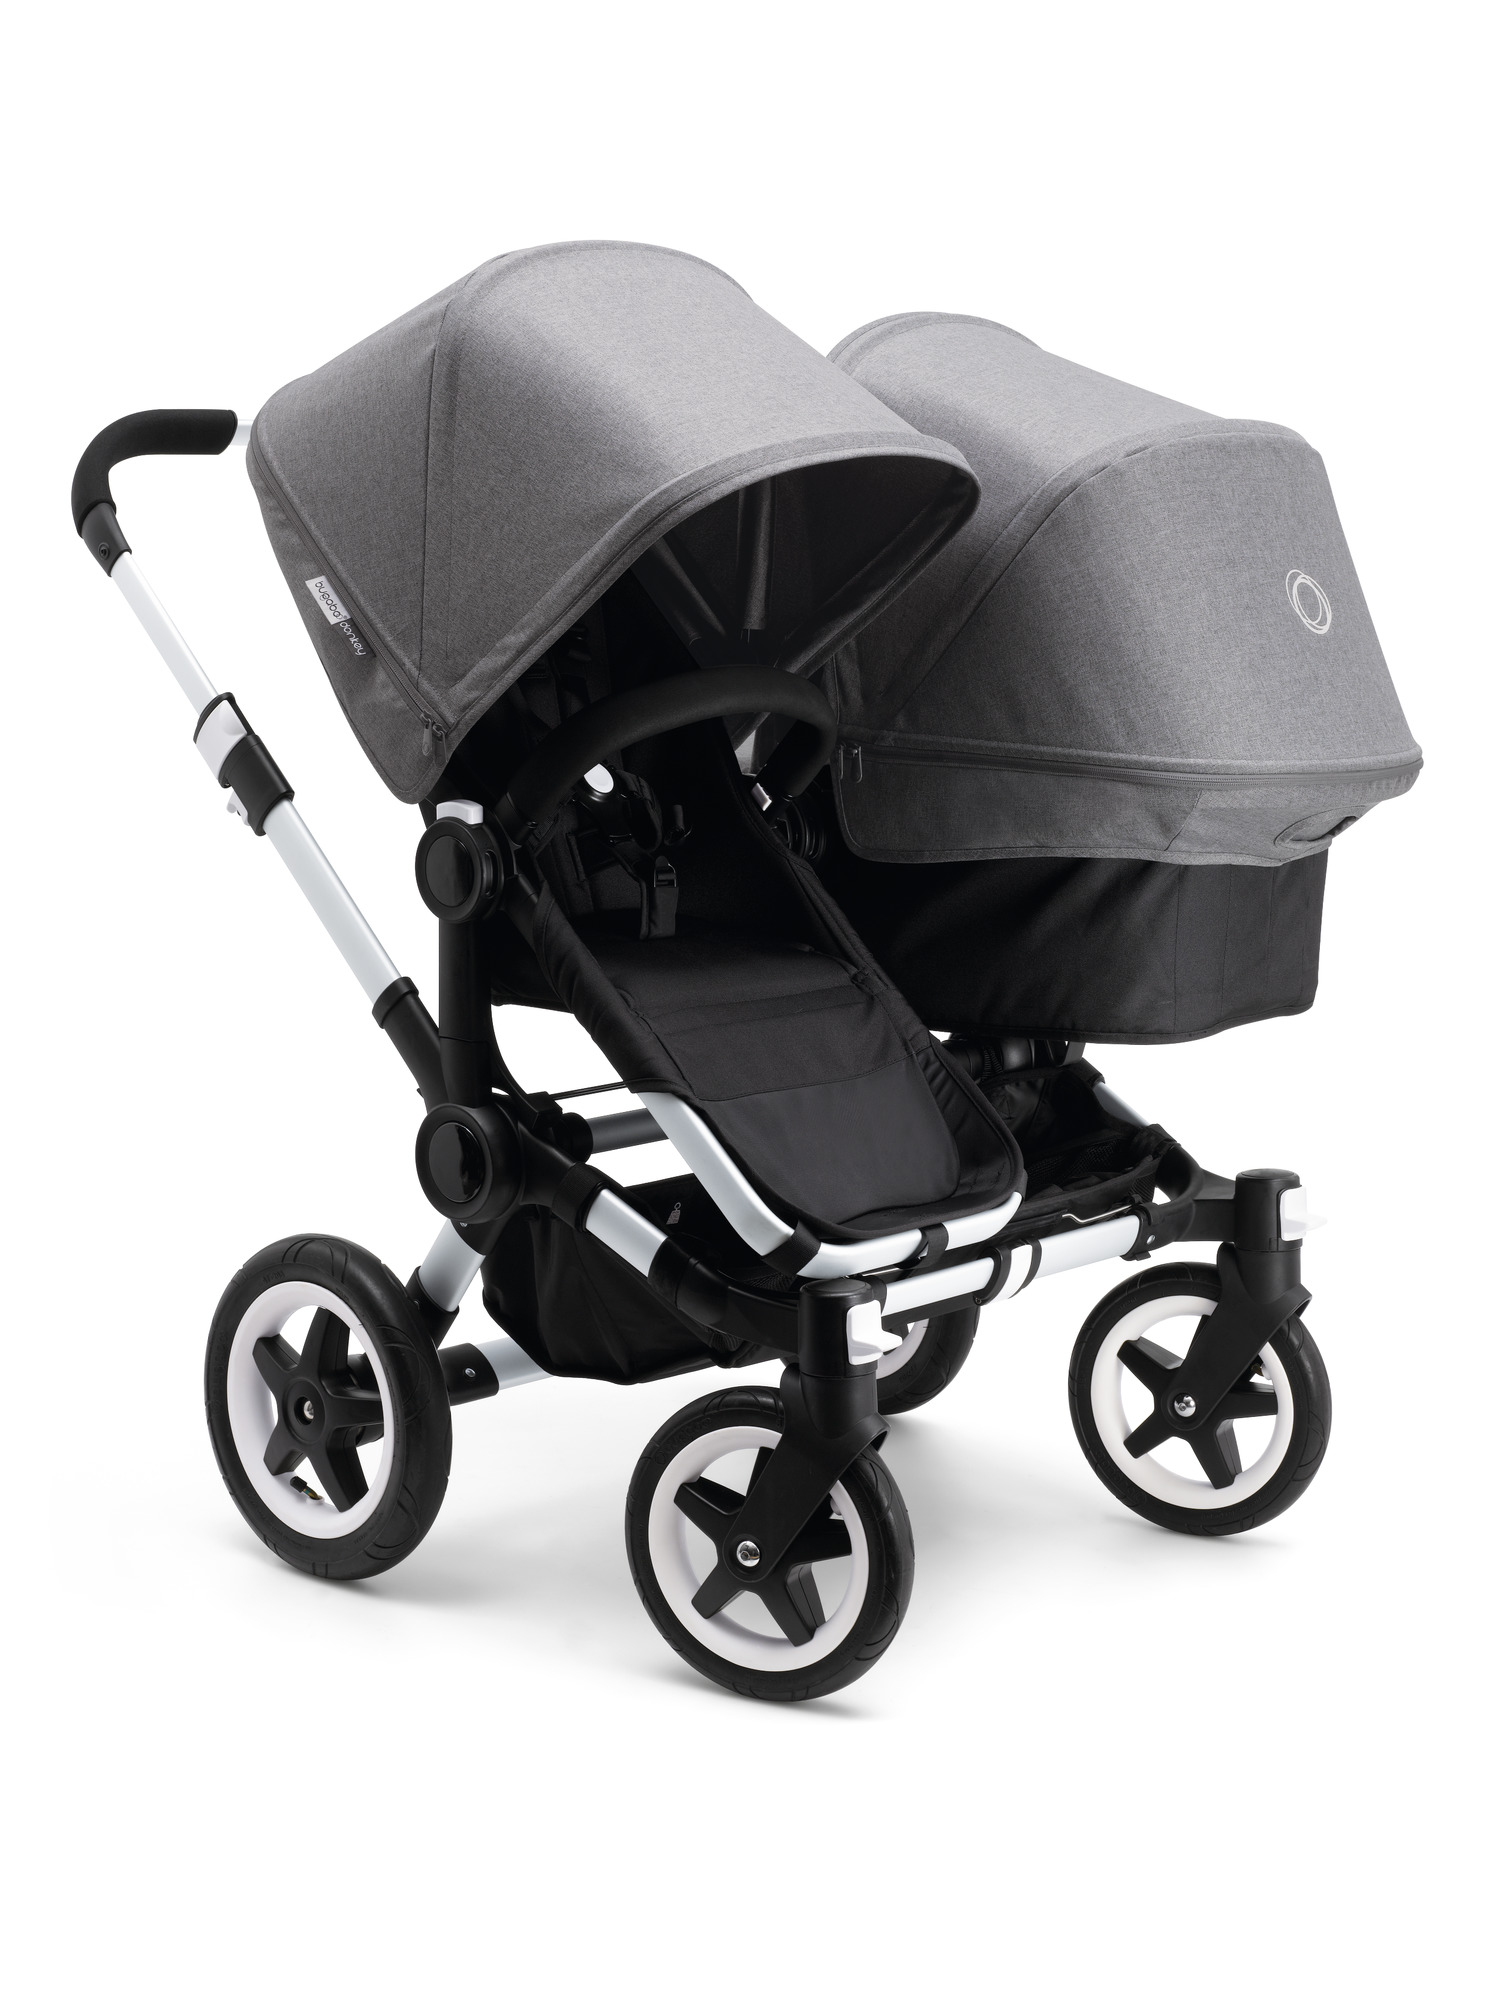 Jjcole Broadway likewise 1181138 furthermore 2018 Bugaboo Donkey2 Twin  plete Stroller Aluminum Frame in addition Isafe Tandem Pram Me You 2 Tone Red Red With Car Seat And 3 Rain Cover further Mother Care Ziba Infant Carseat Thegbabe Rentals. on convertible car seat sun canopy